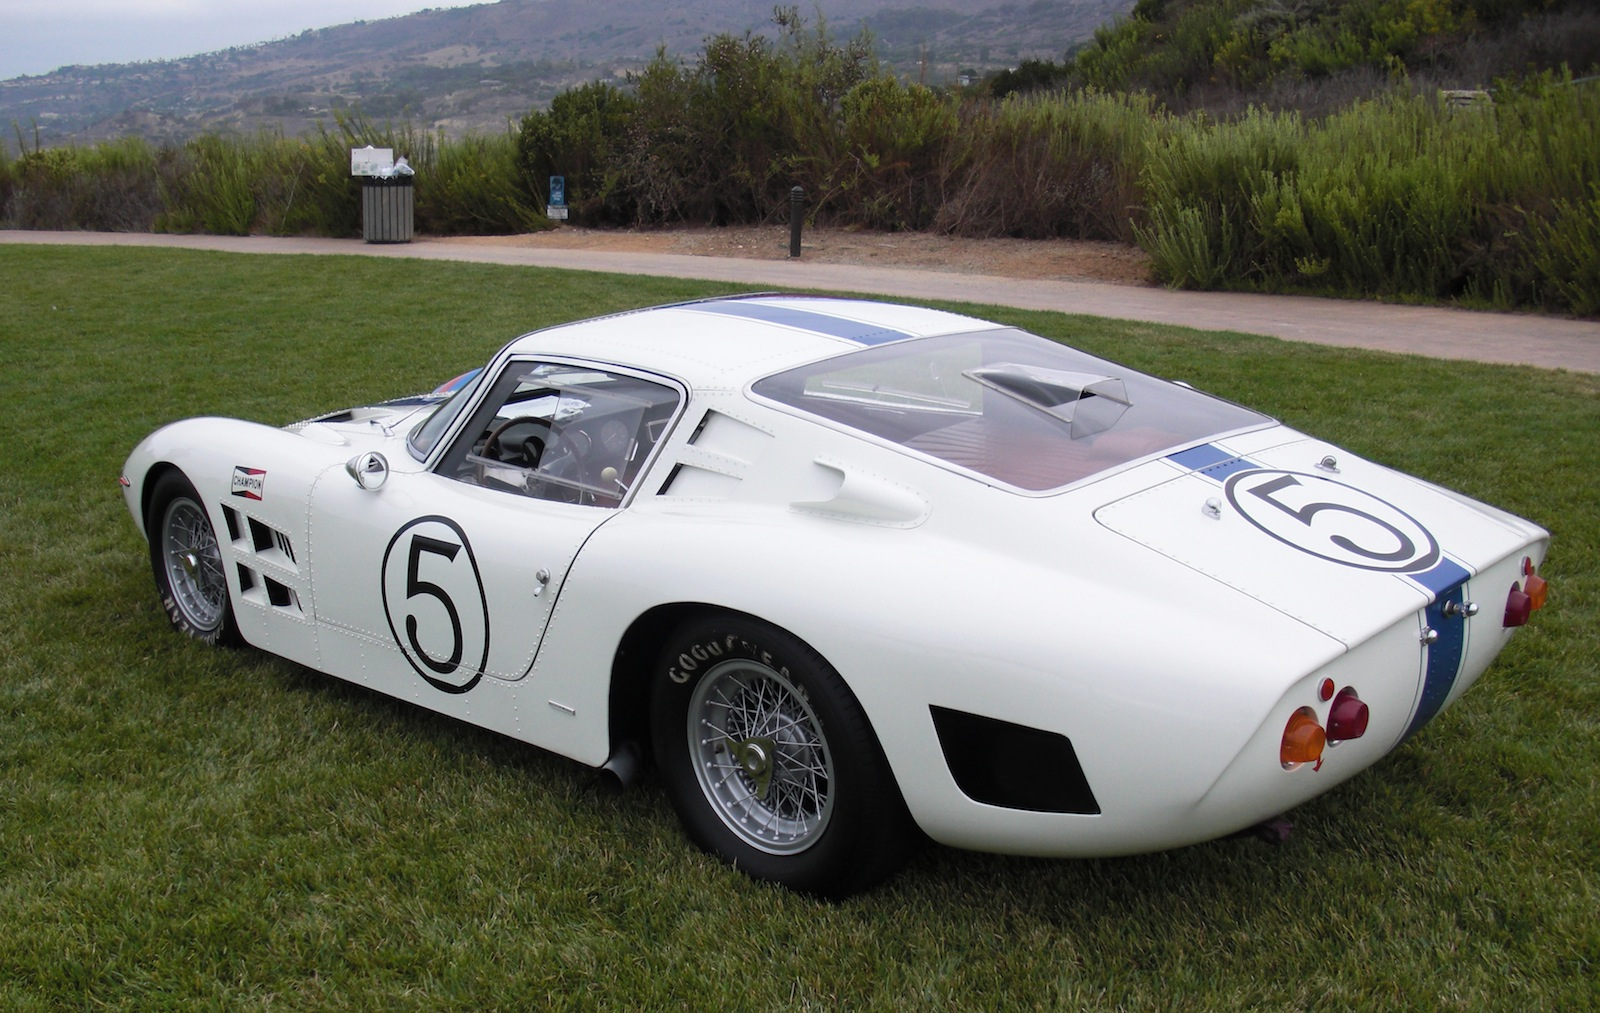 Car Of The Day – Classic Car For Sale – 1964 Iso Grifo A3/C Race Car